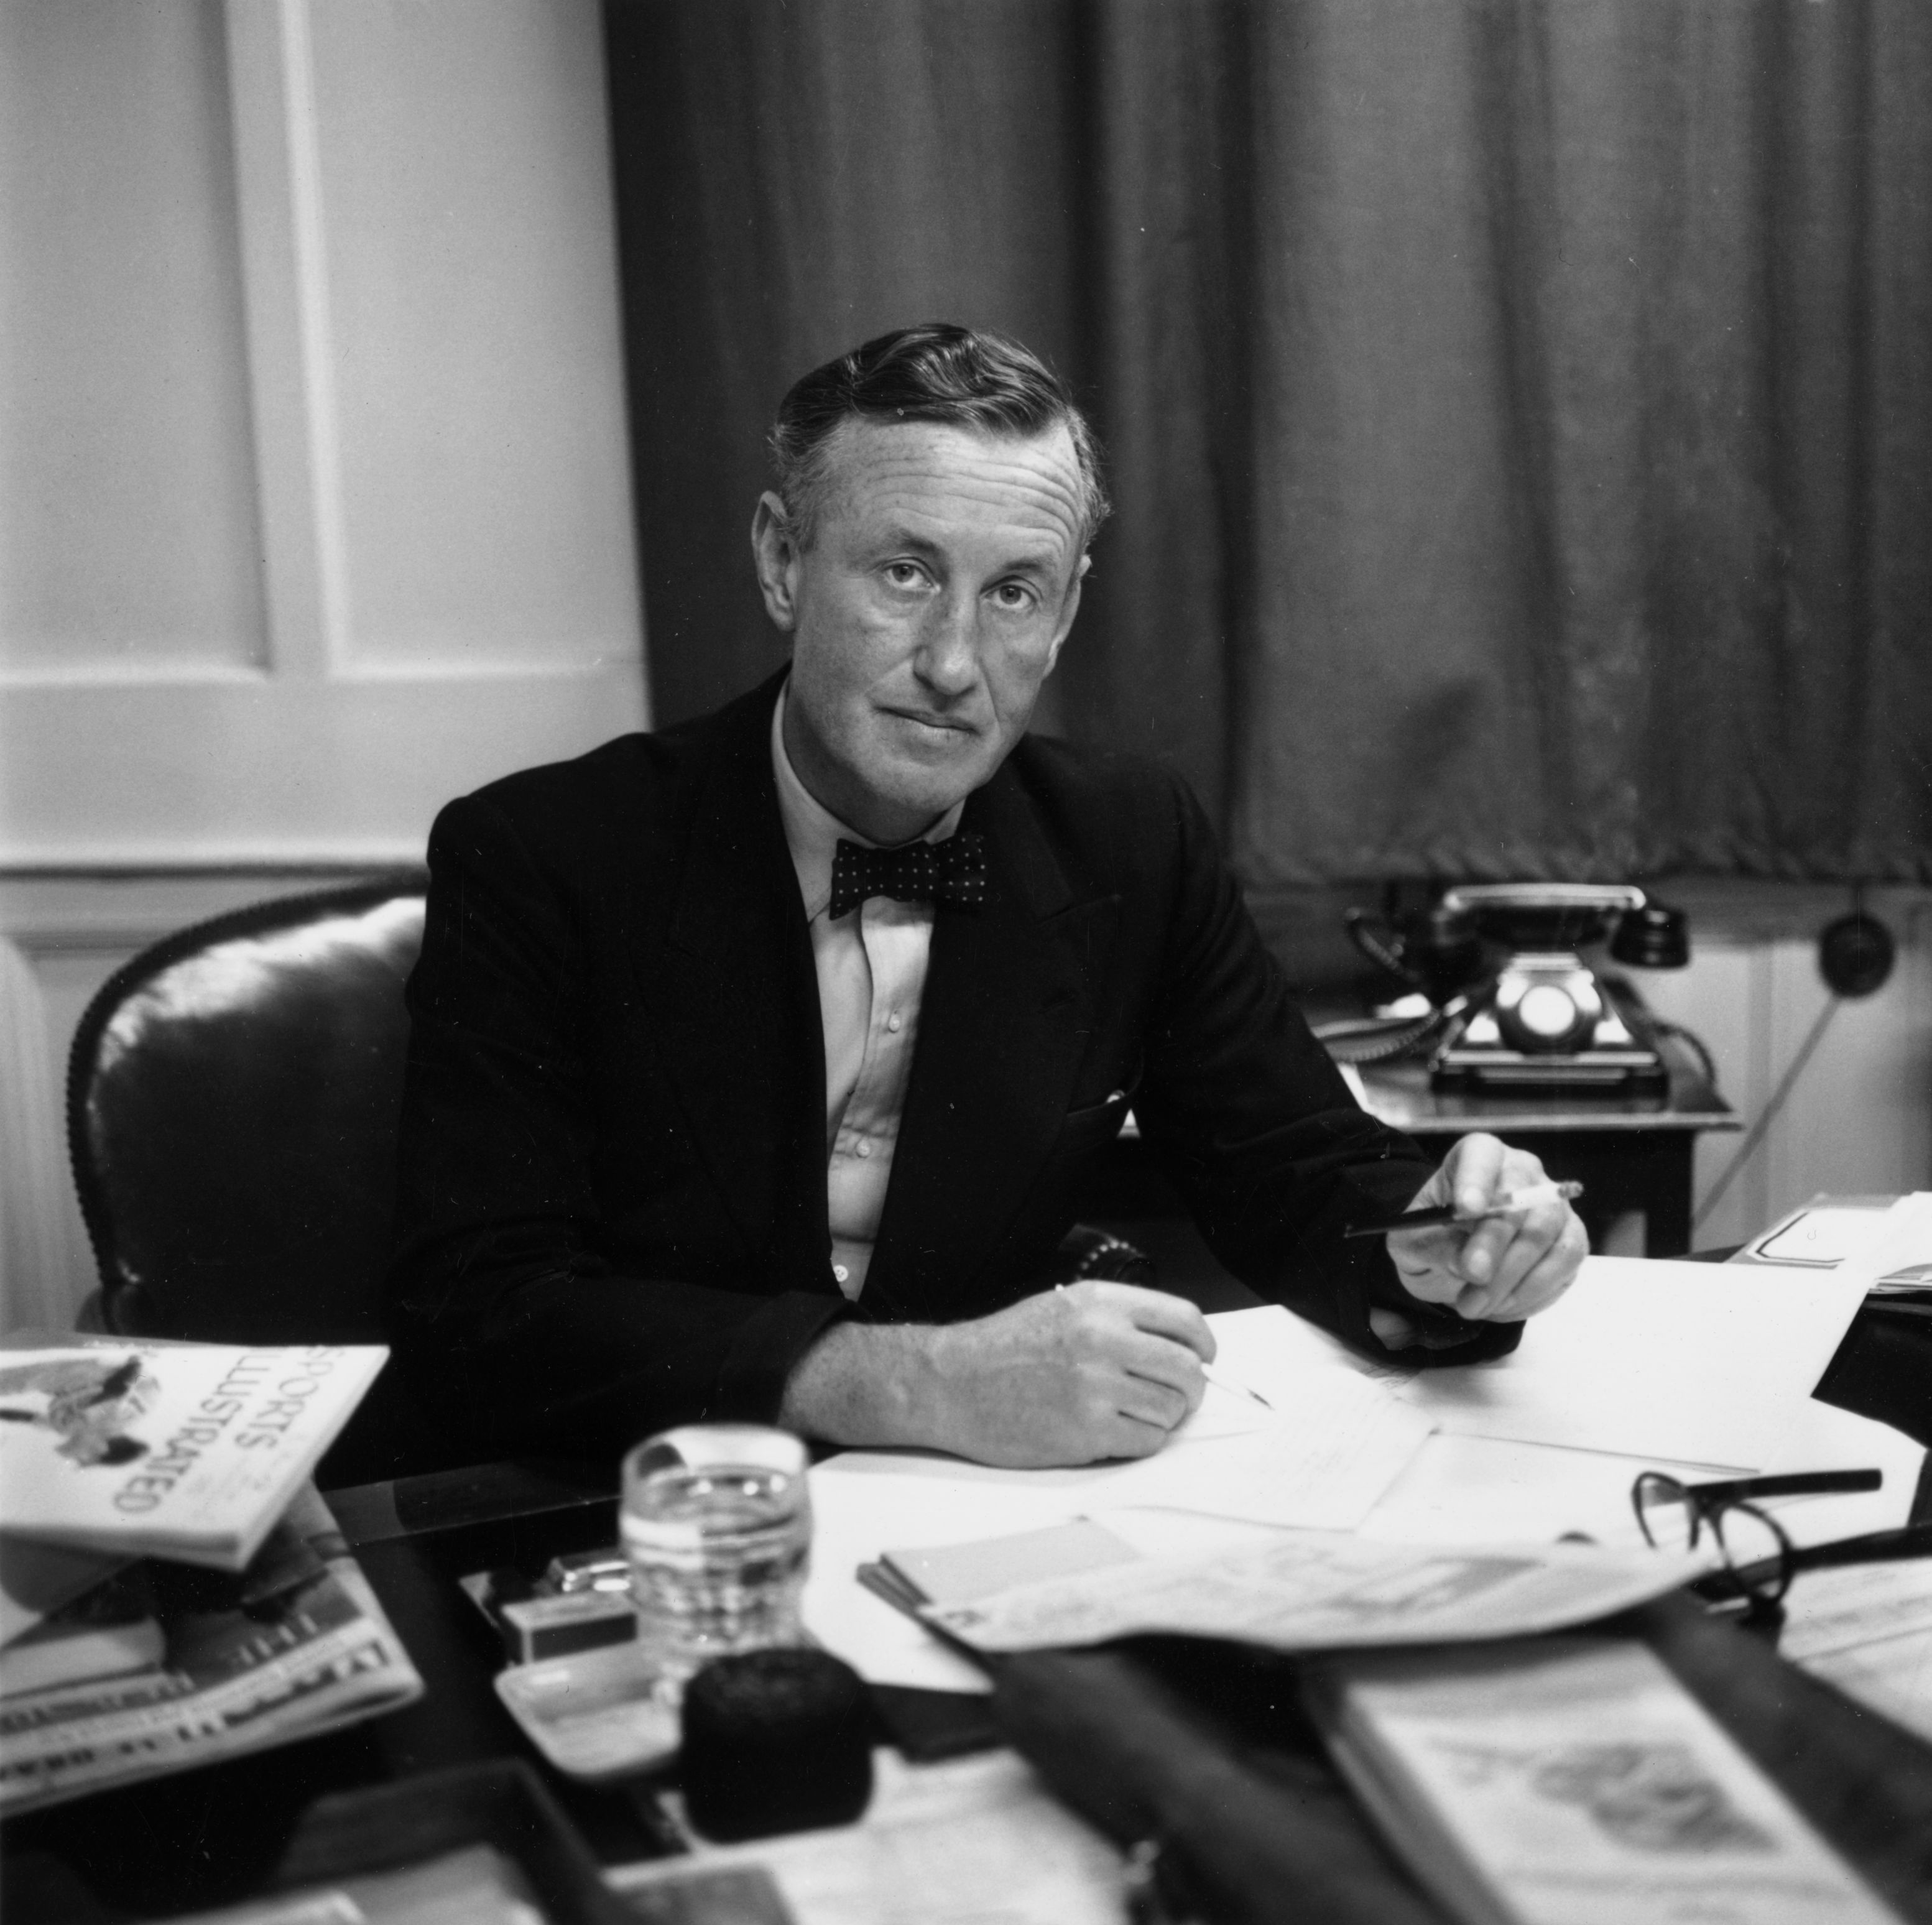 Ian Fleming, the author who created James Bond, at his desk in 1958.